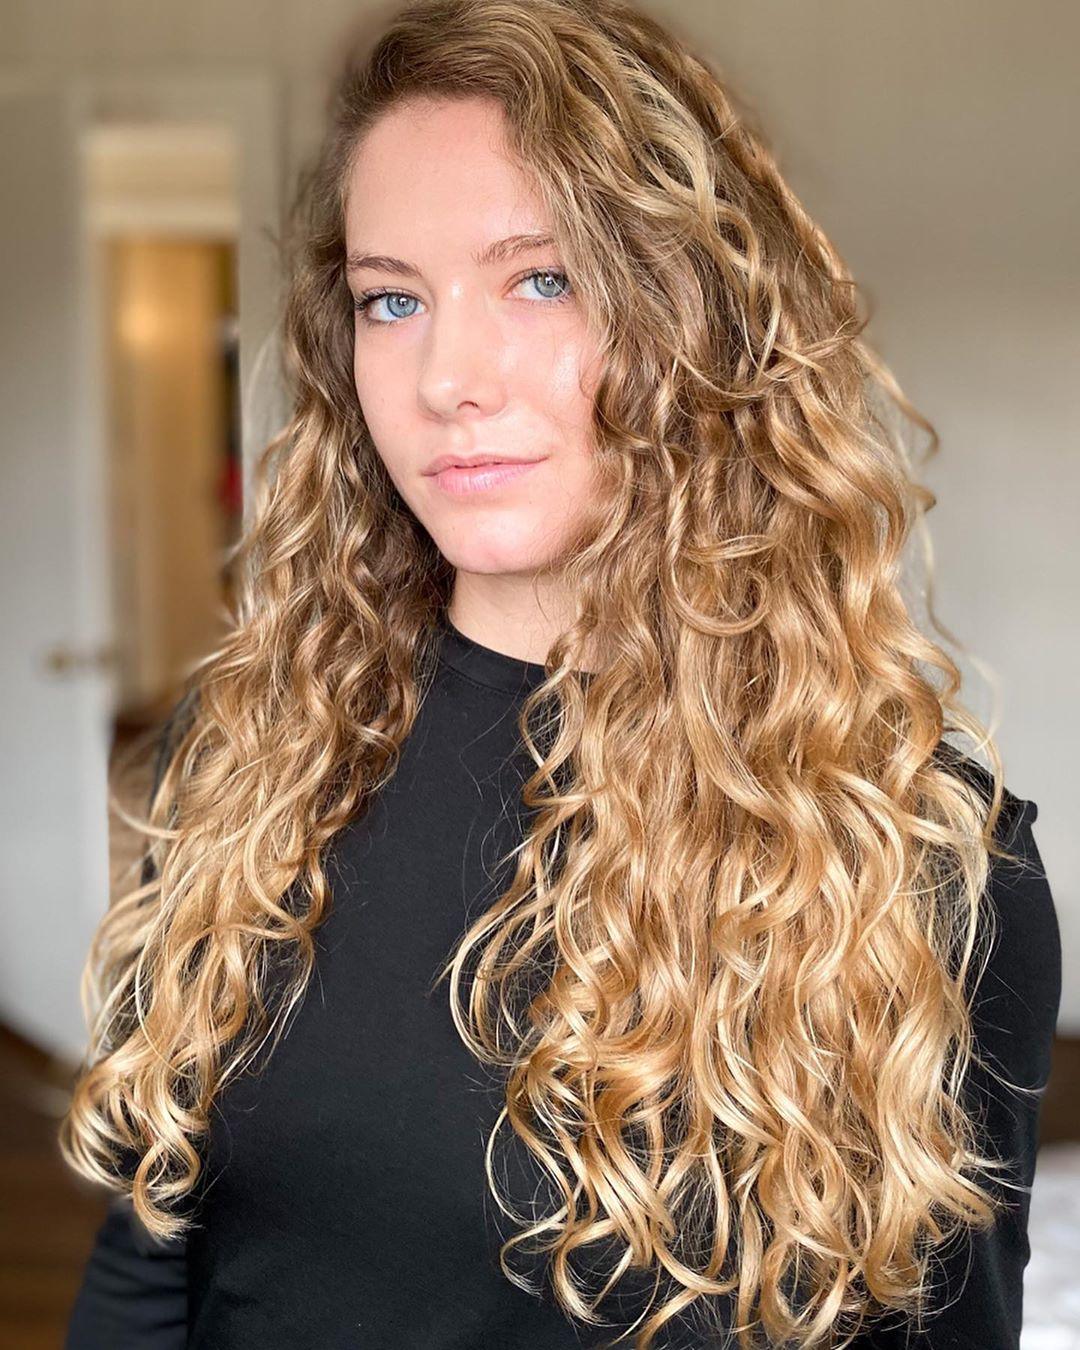 12 Tricks To Modify The Curly Girl Method For Wavy Hair In 2020